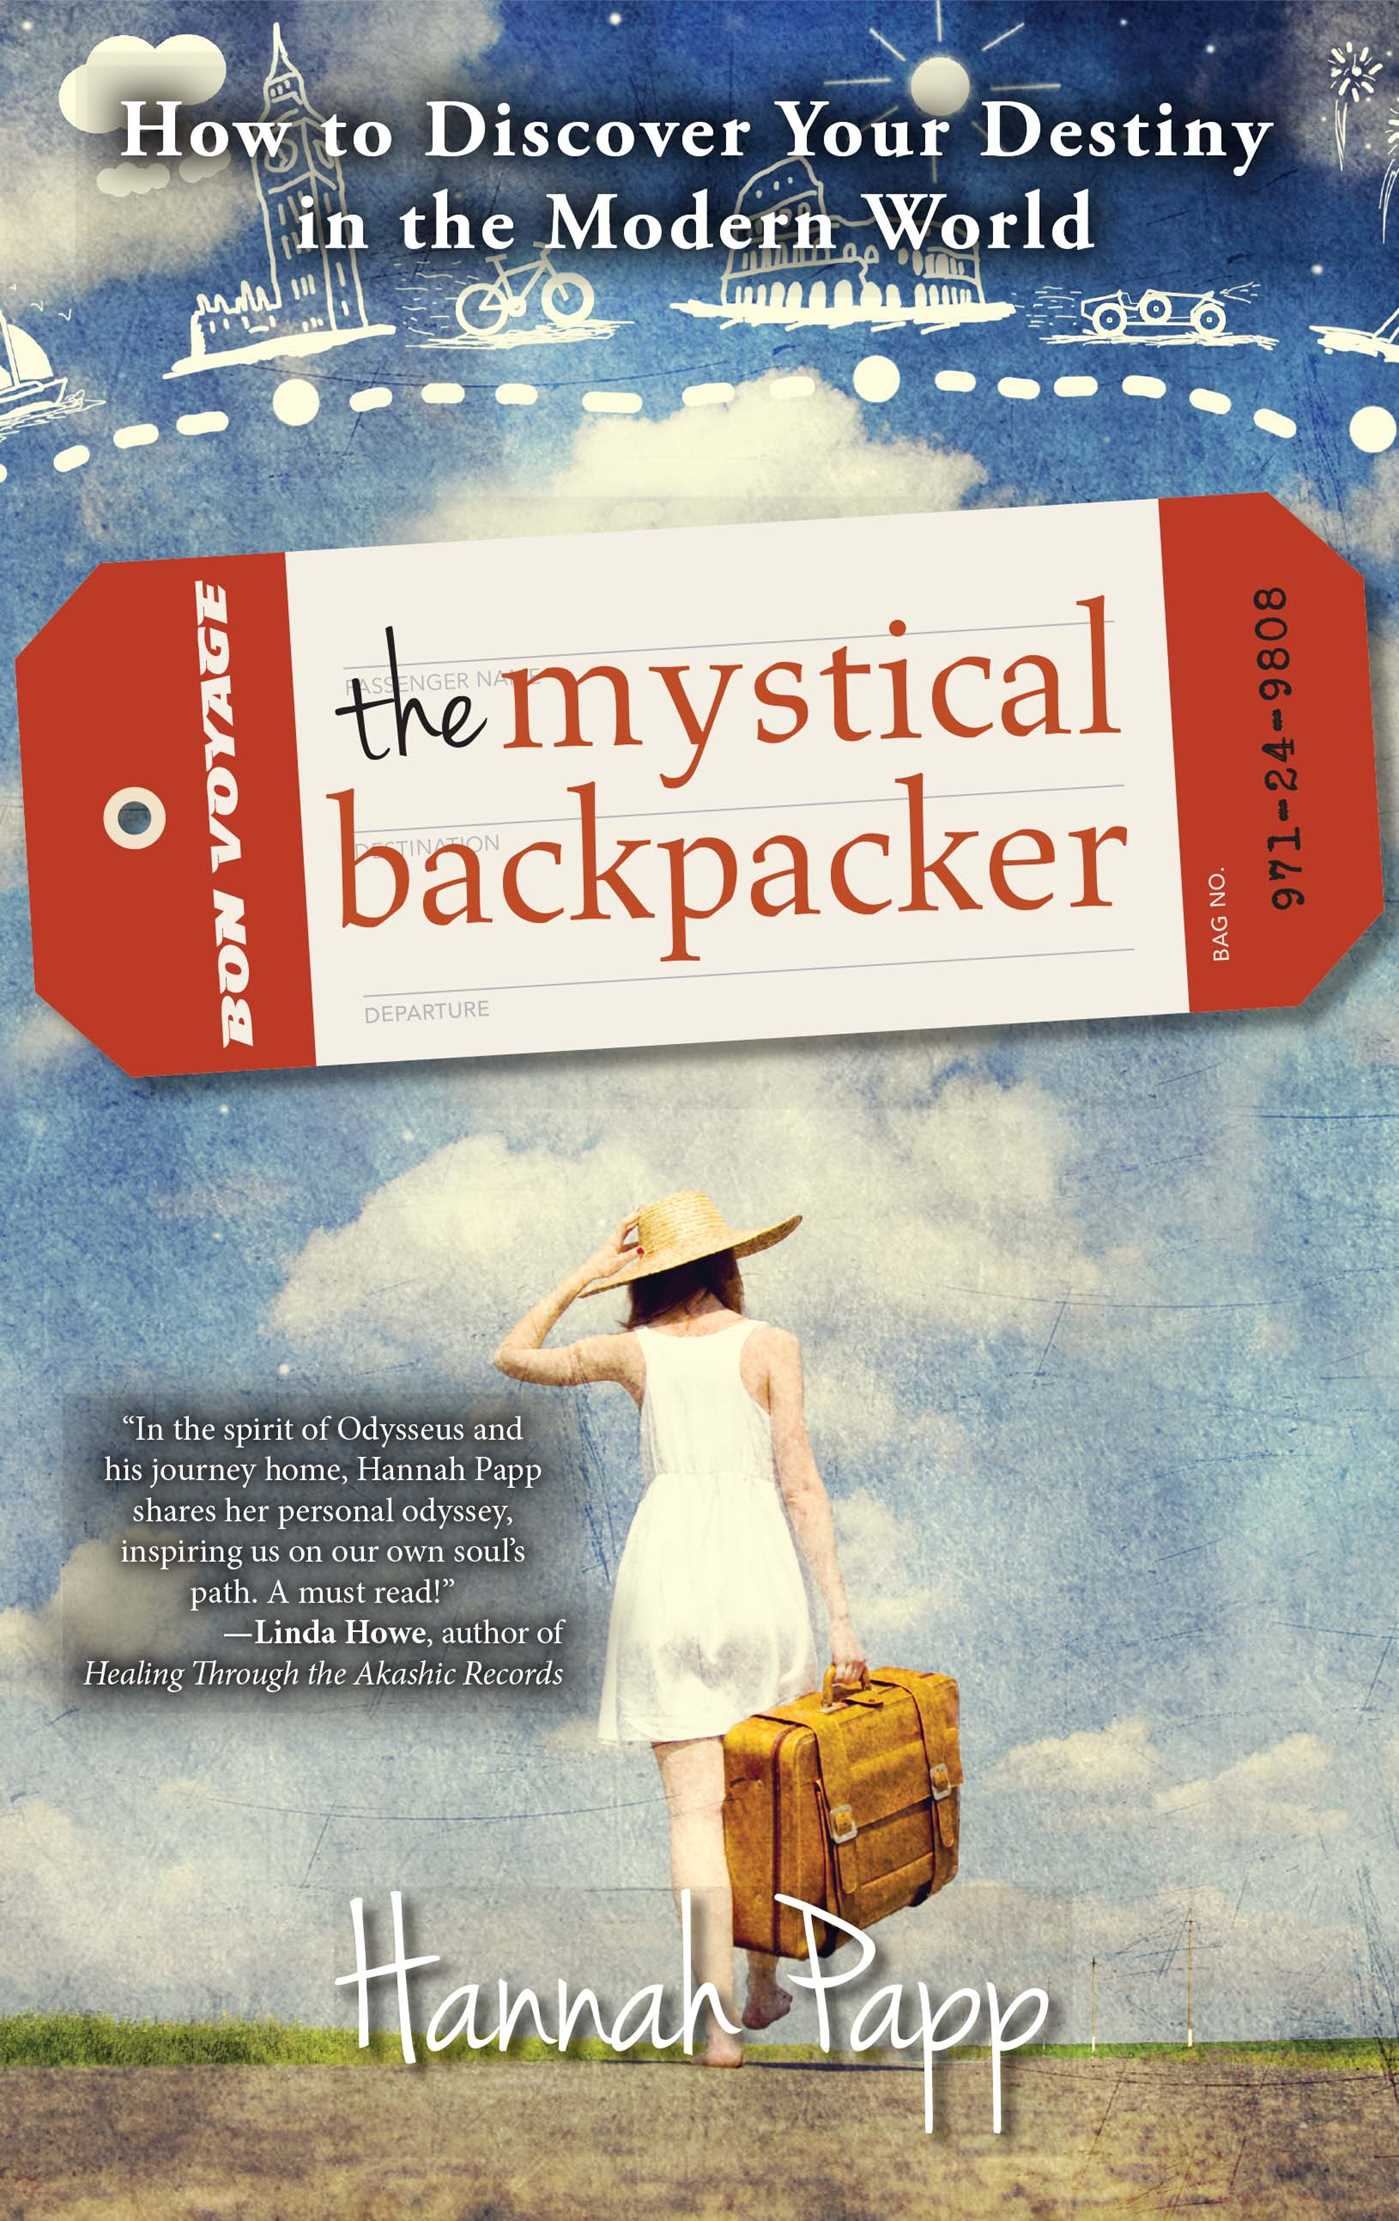 The mystical backpacker 9781582704869 hr